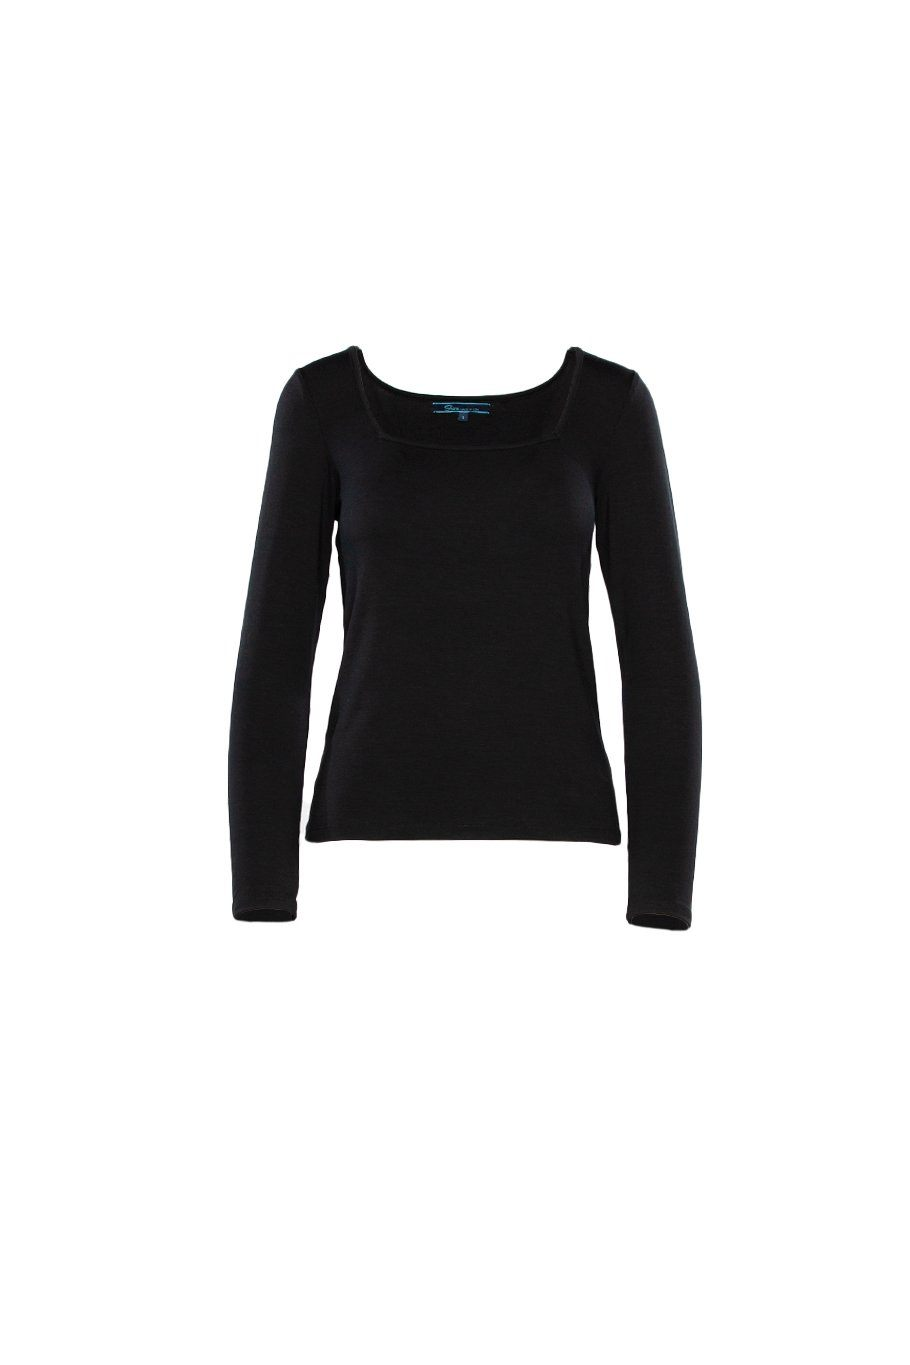 Square Neck Top - Black